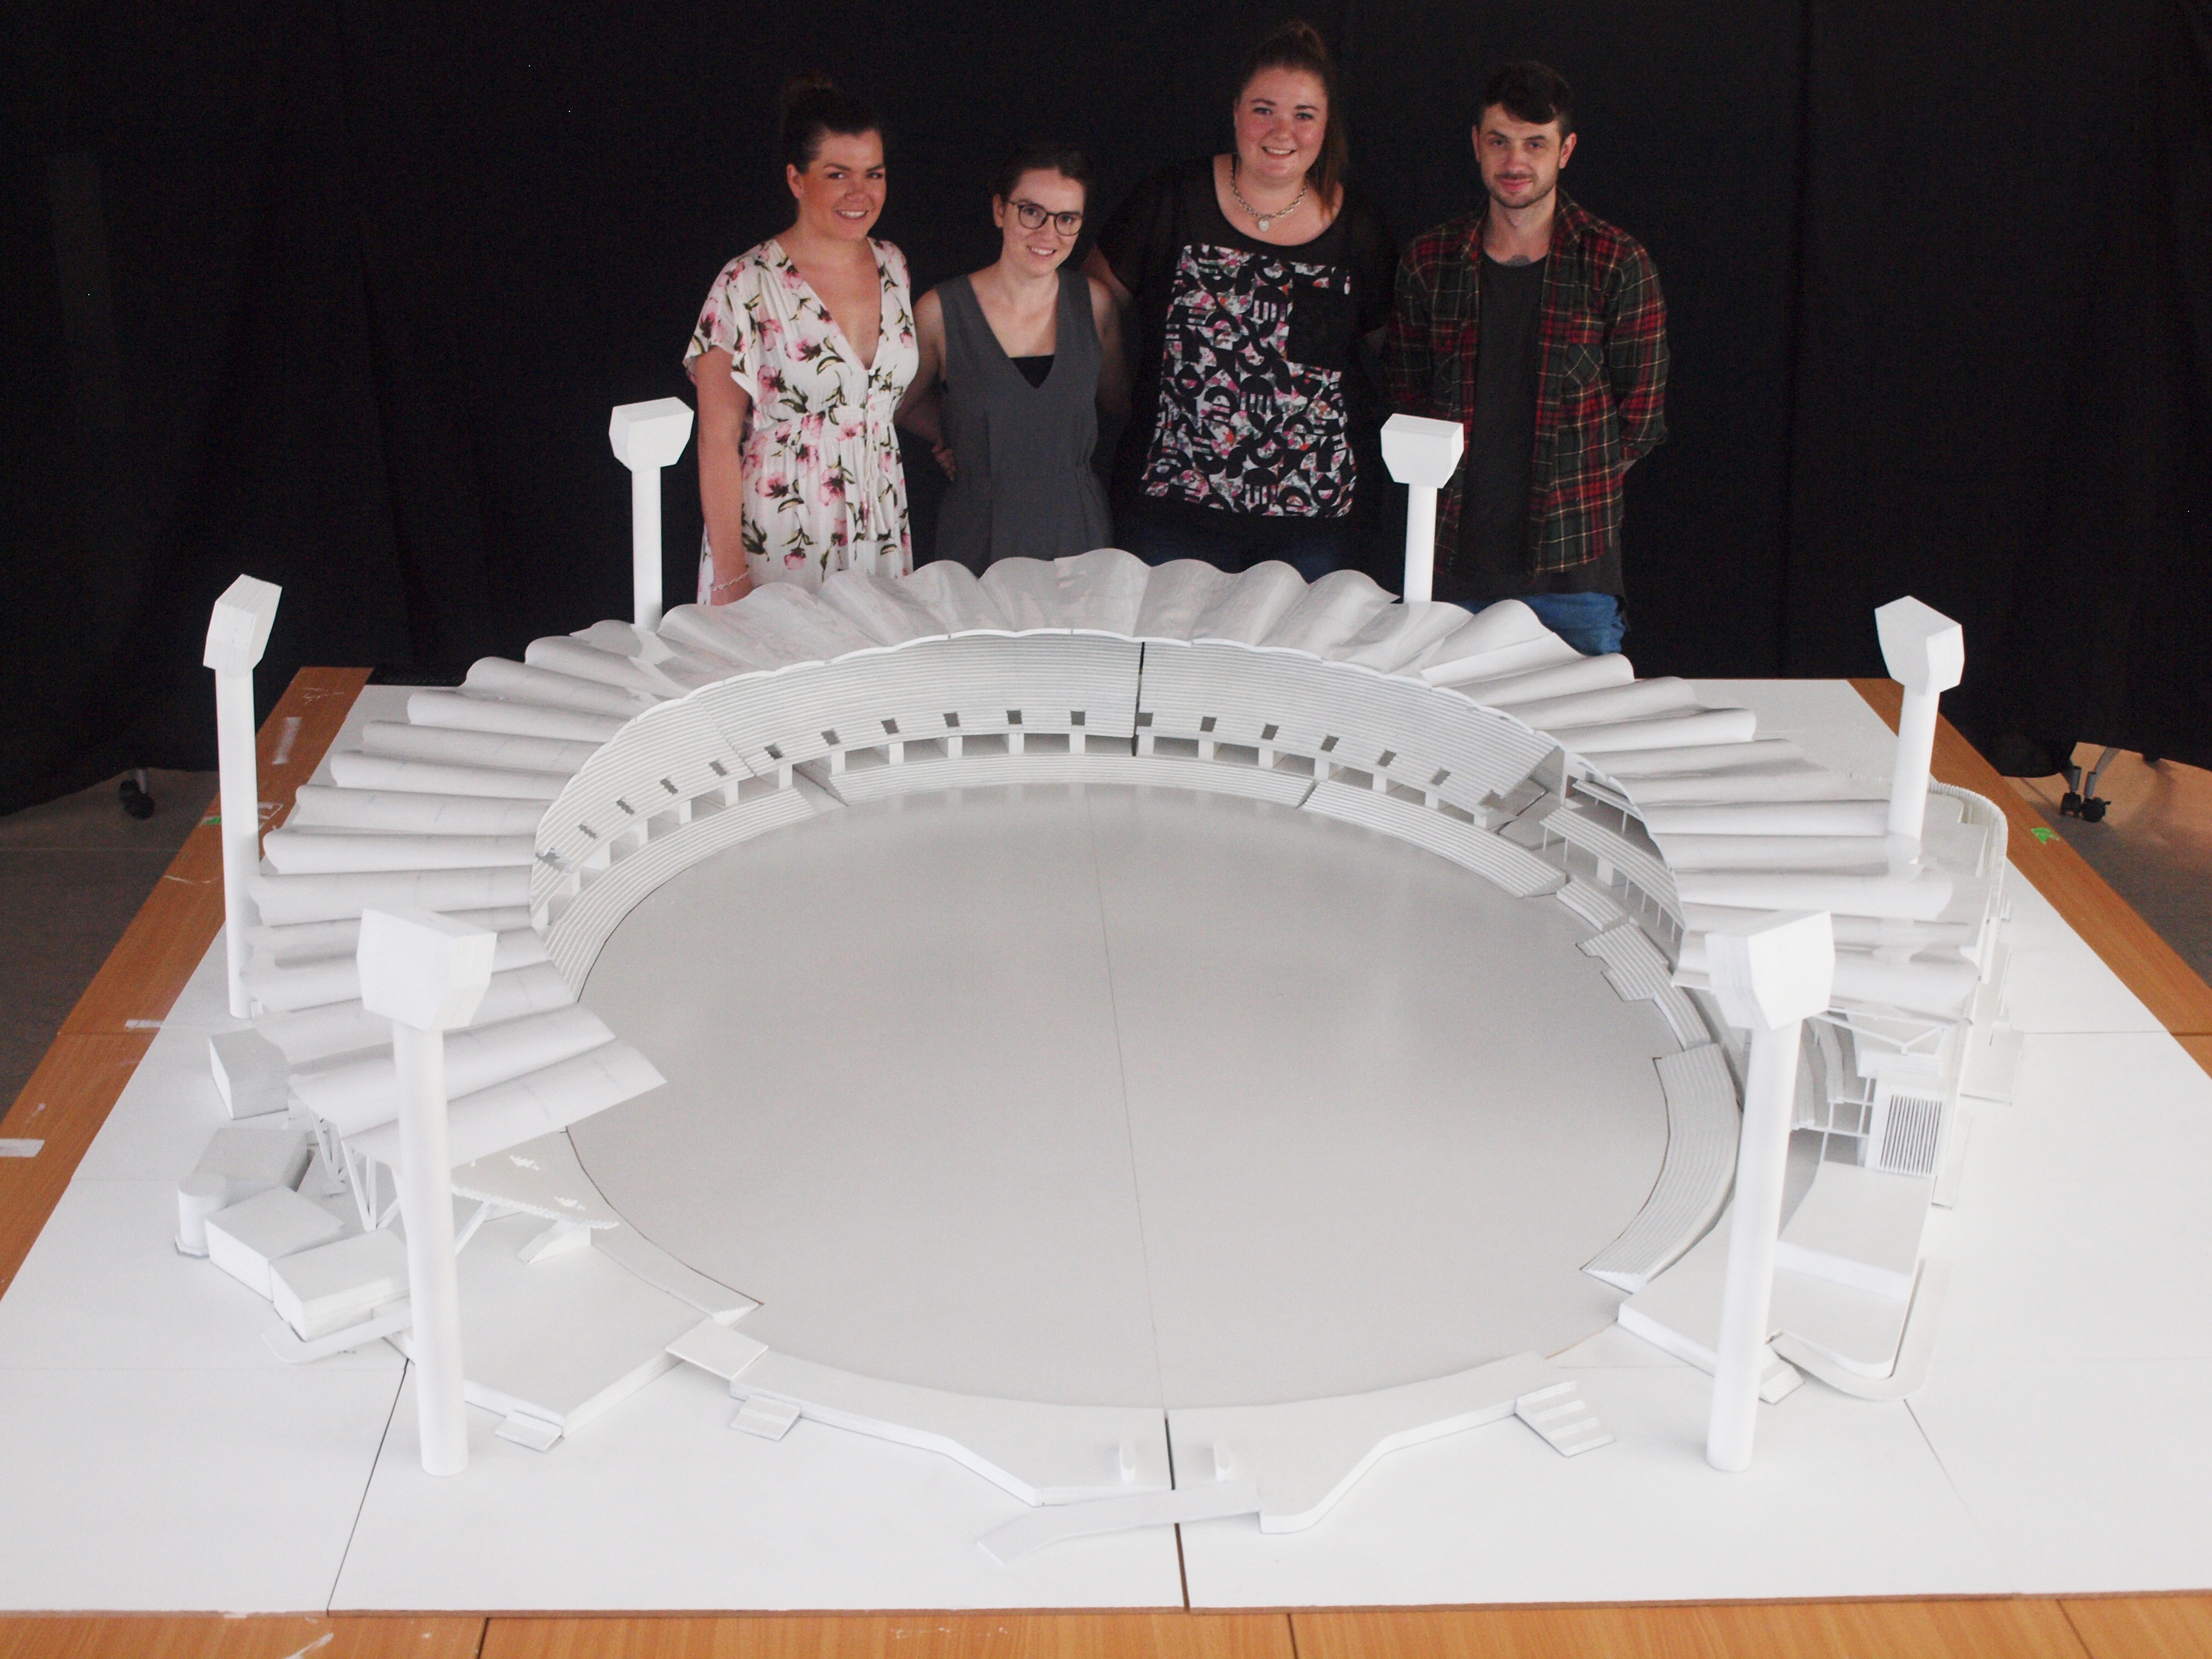 Architecture students Nikki Findlay, Sarah Paige, Kirra Keating, Brian Mates with the Carrara Stadium model.